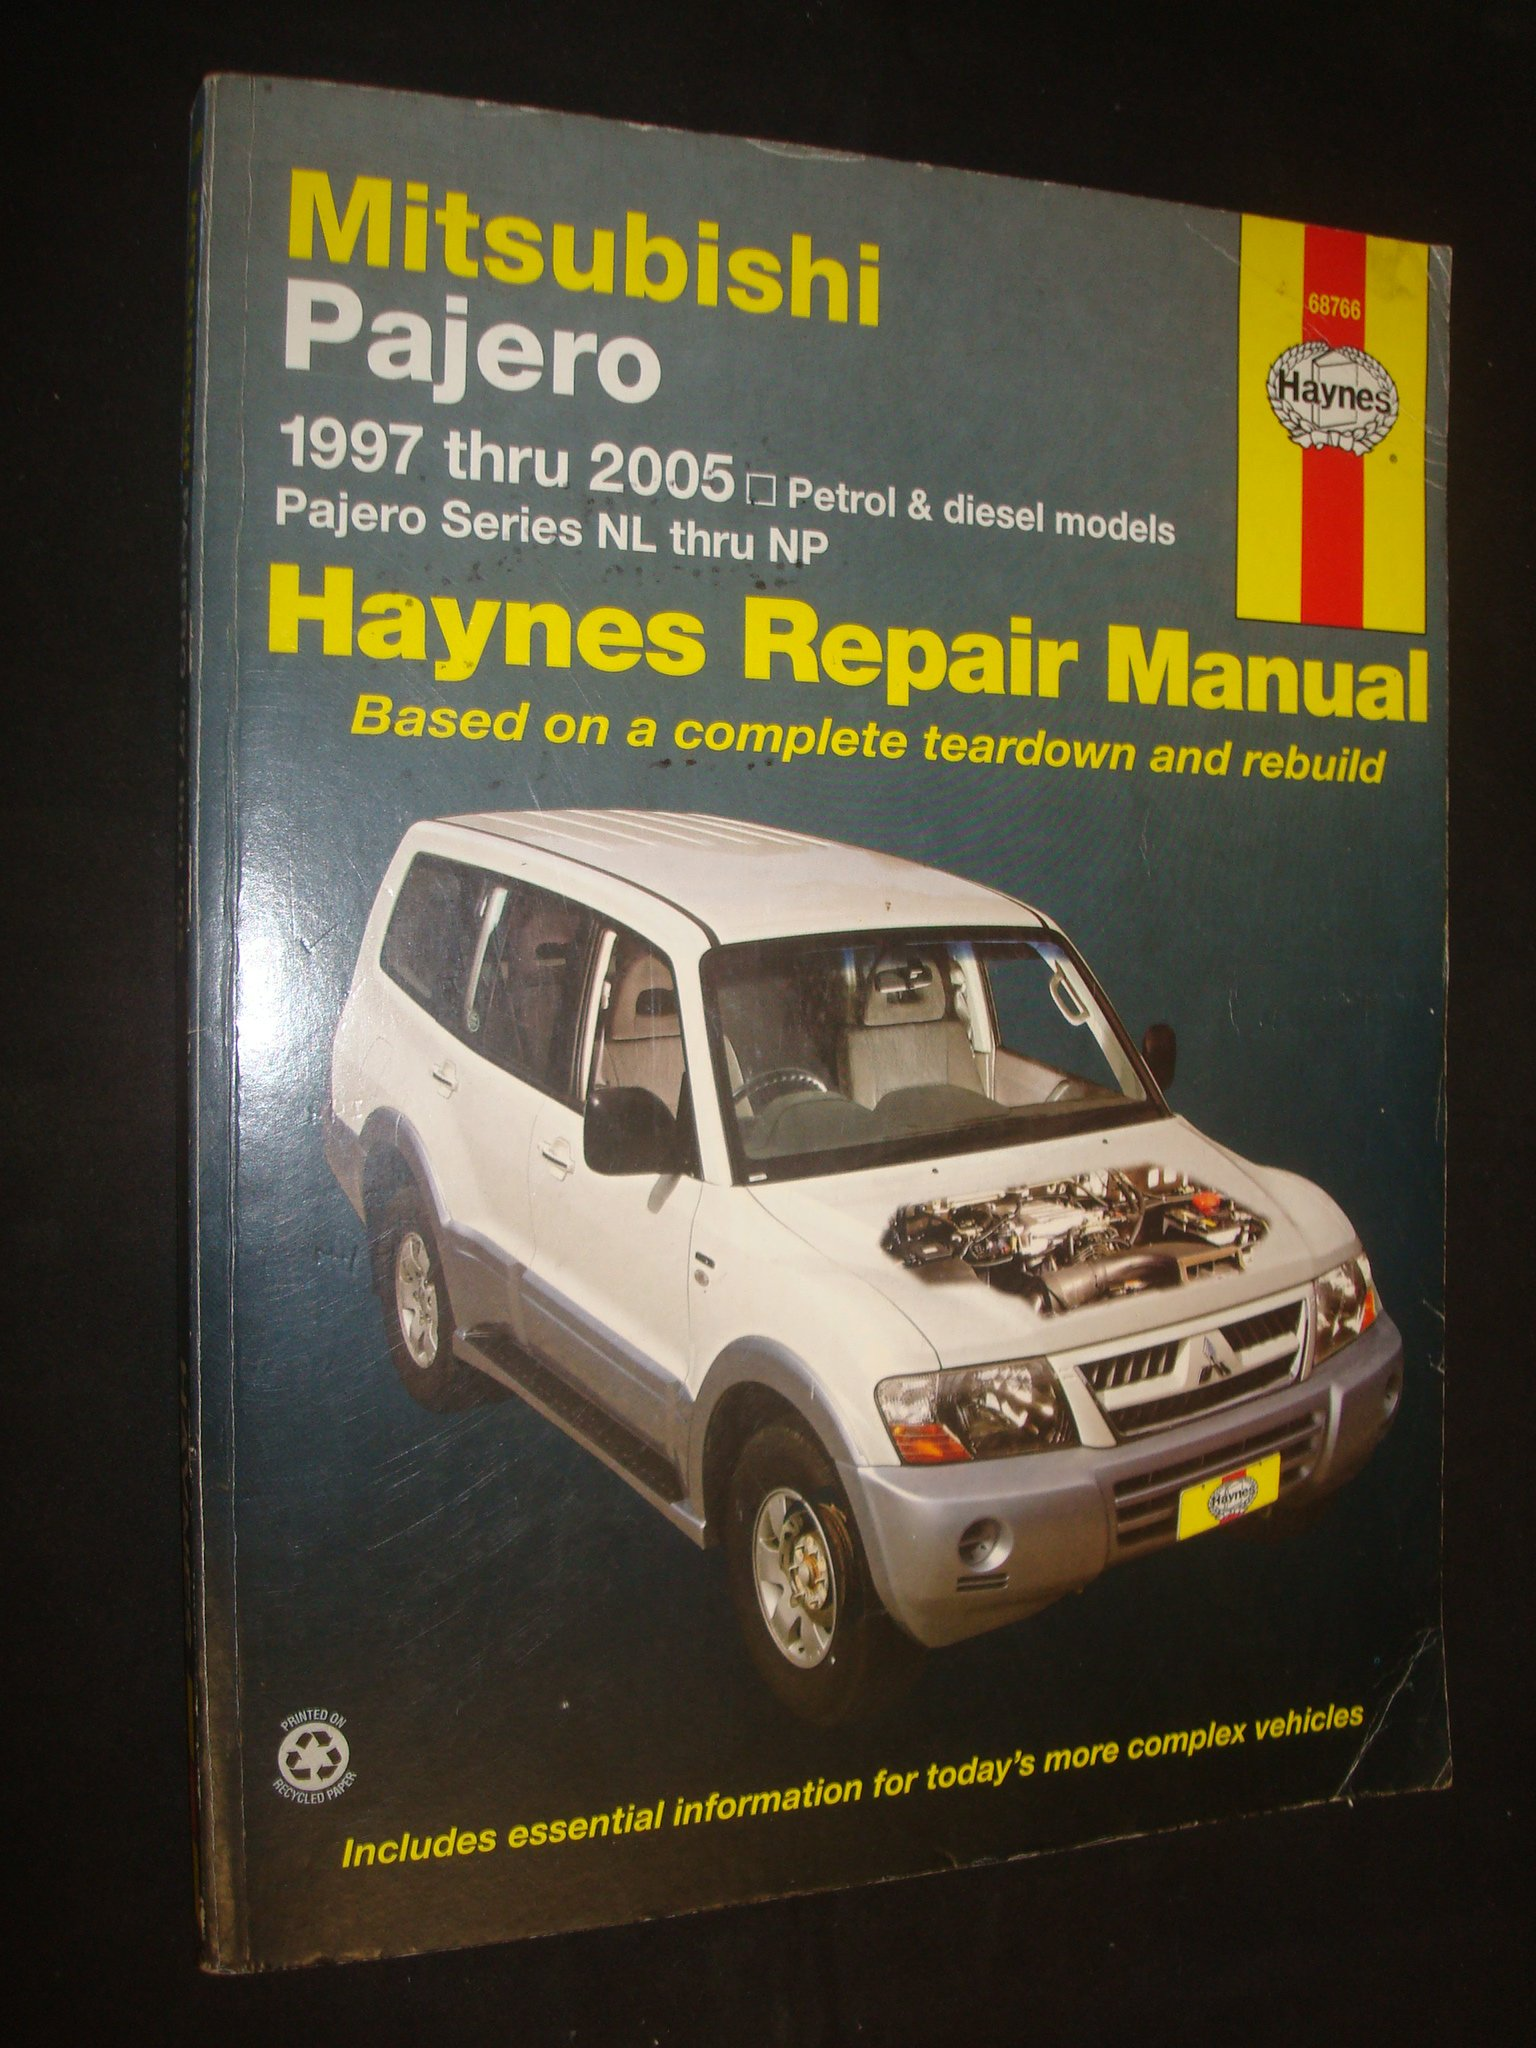 Mitsubishi Pajero Automotive Repair Manual (Haynes Automotive Repair  Manuals): Haynes Publishing: 9781563926143: Amazon.com: Books